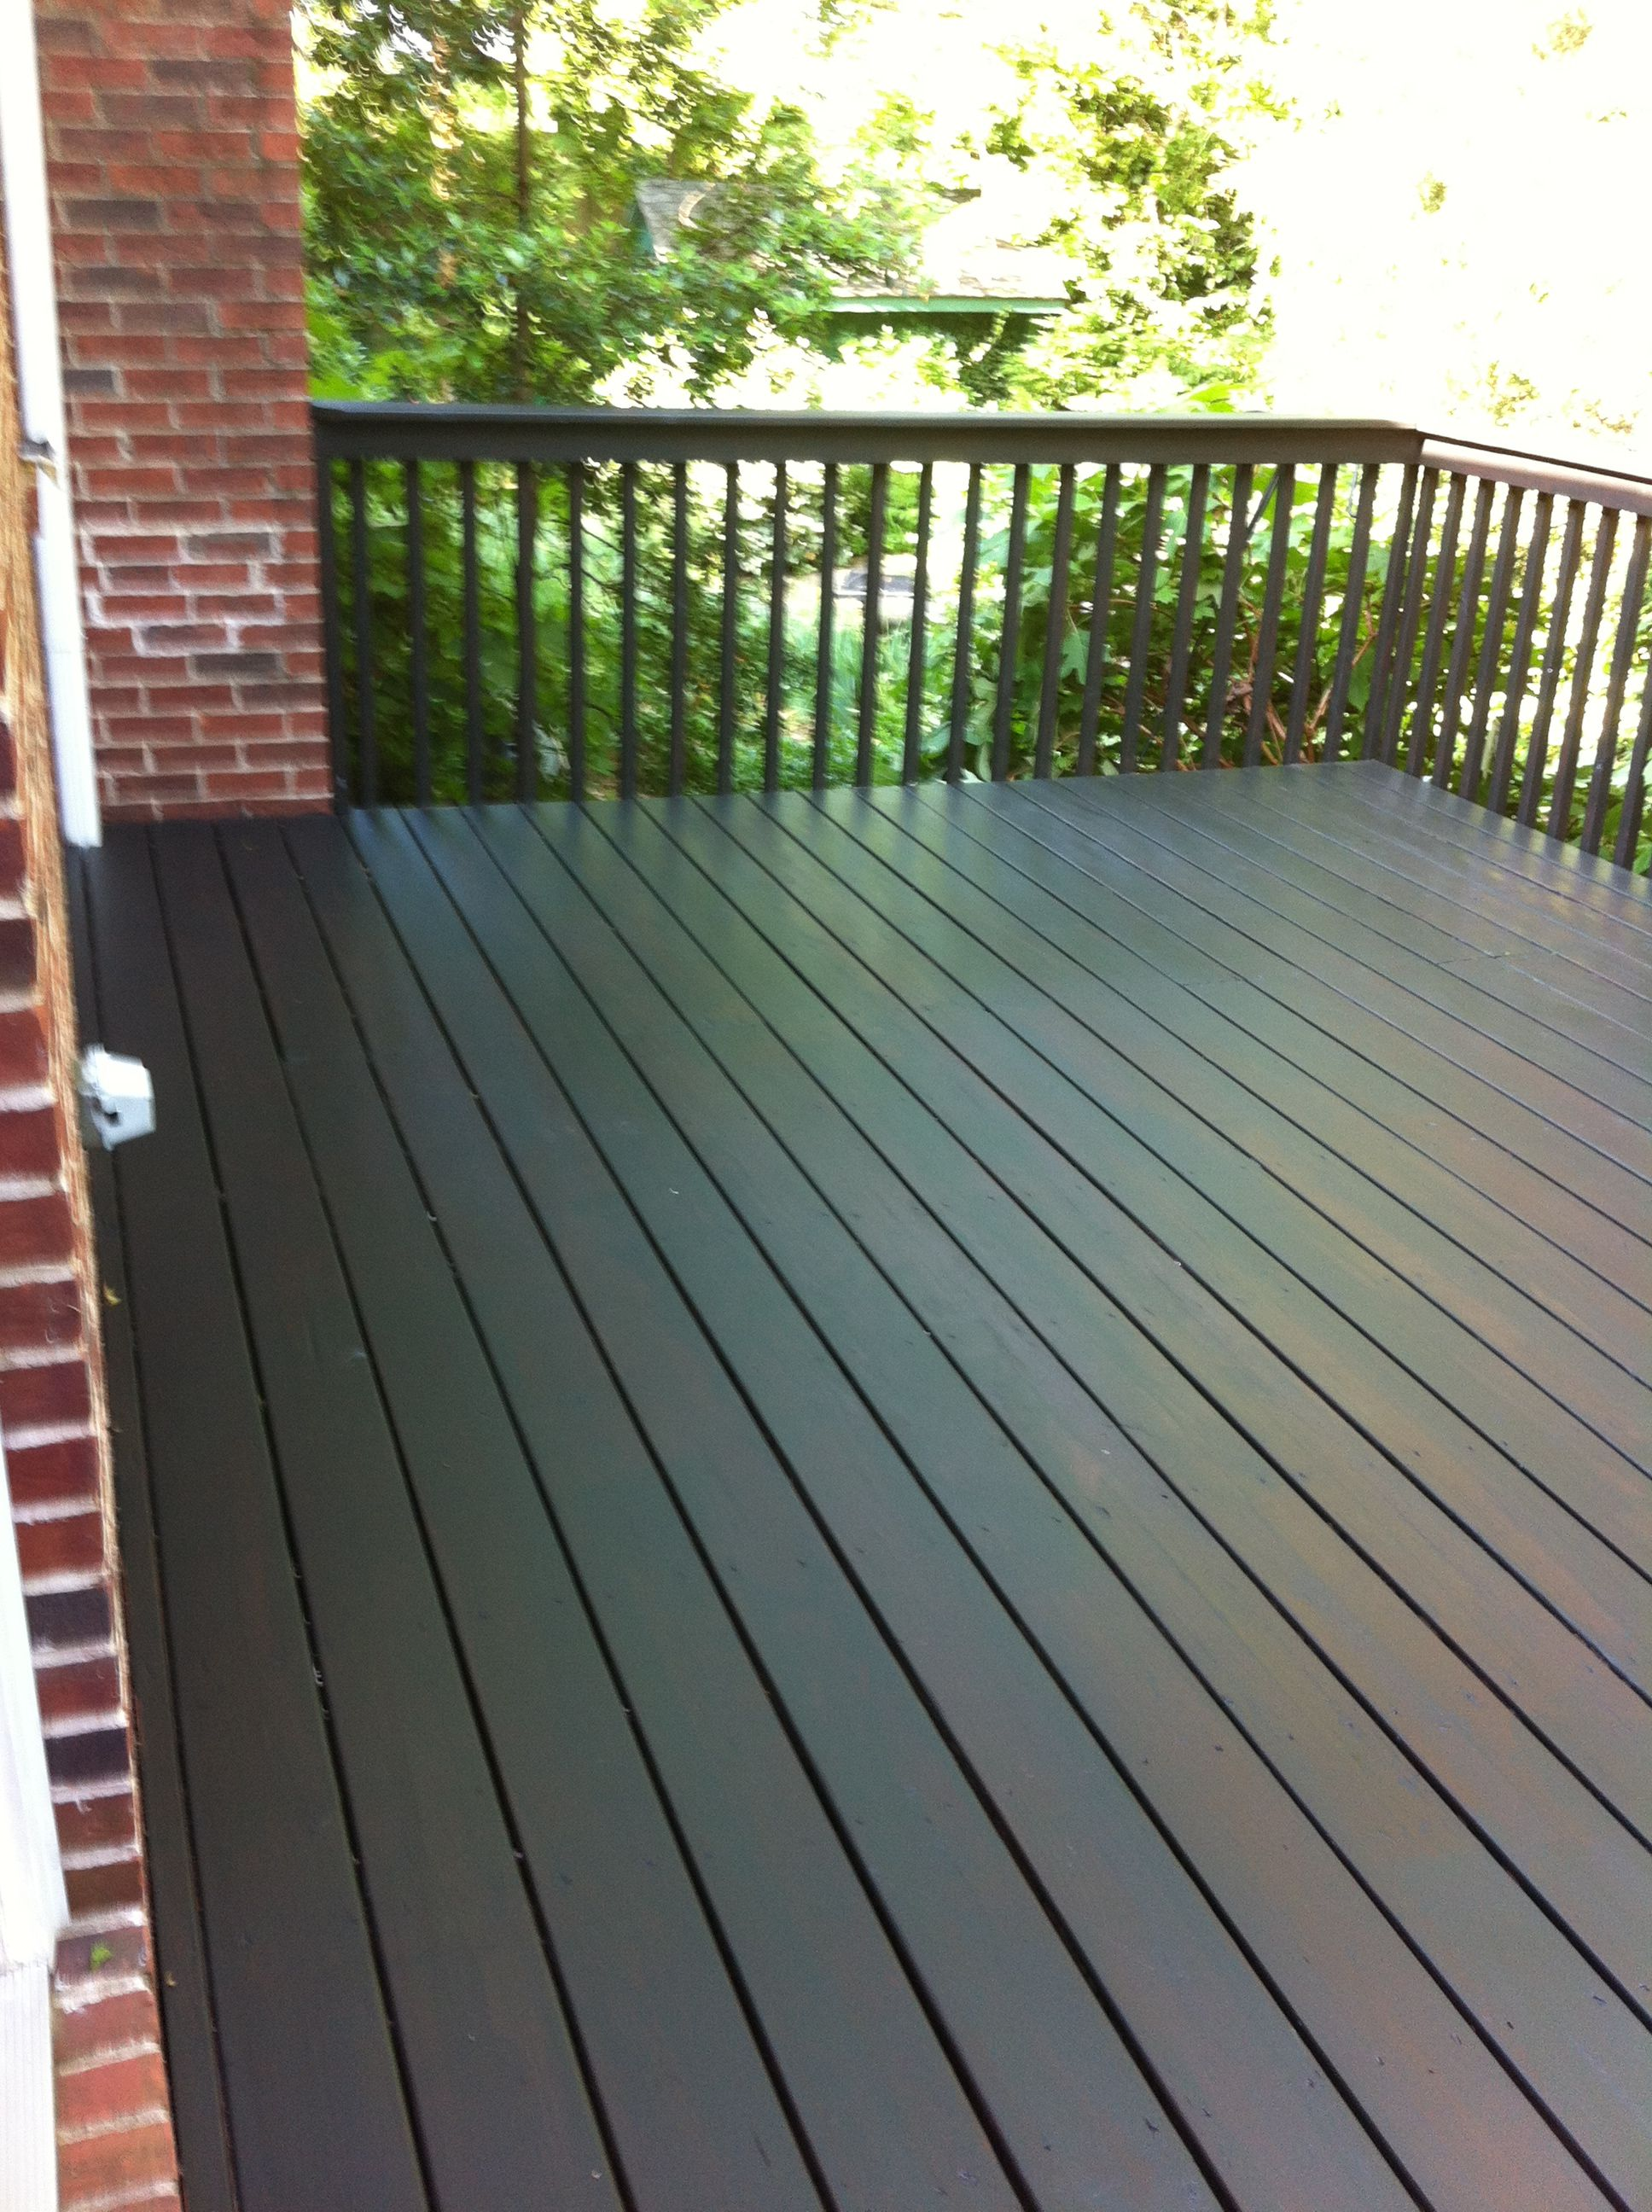 We Wound Up Using Behr Solid Stain In Slate Chose It Because Of Its Scores On A Consumer Reports Test And Generally Have Had Good Results From